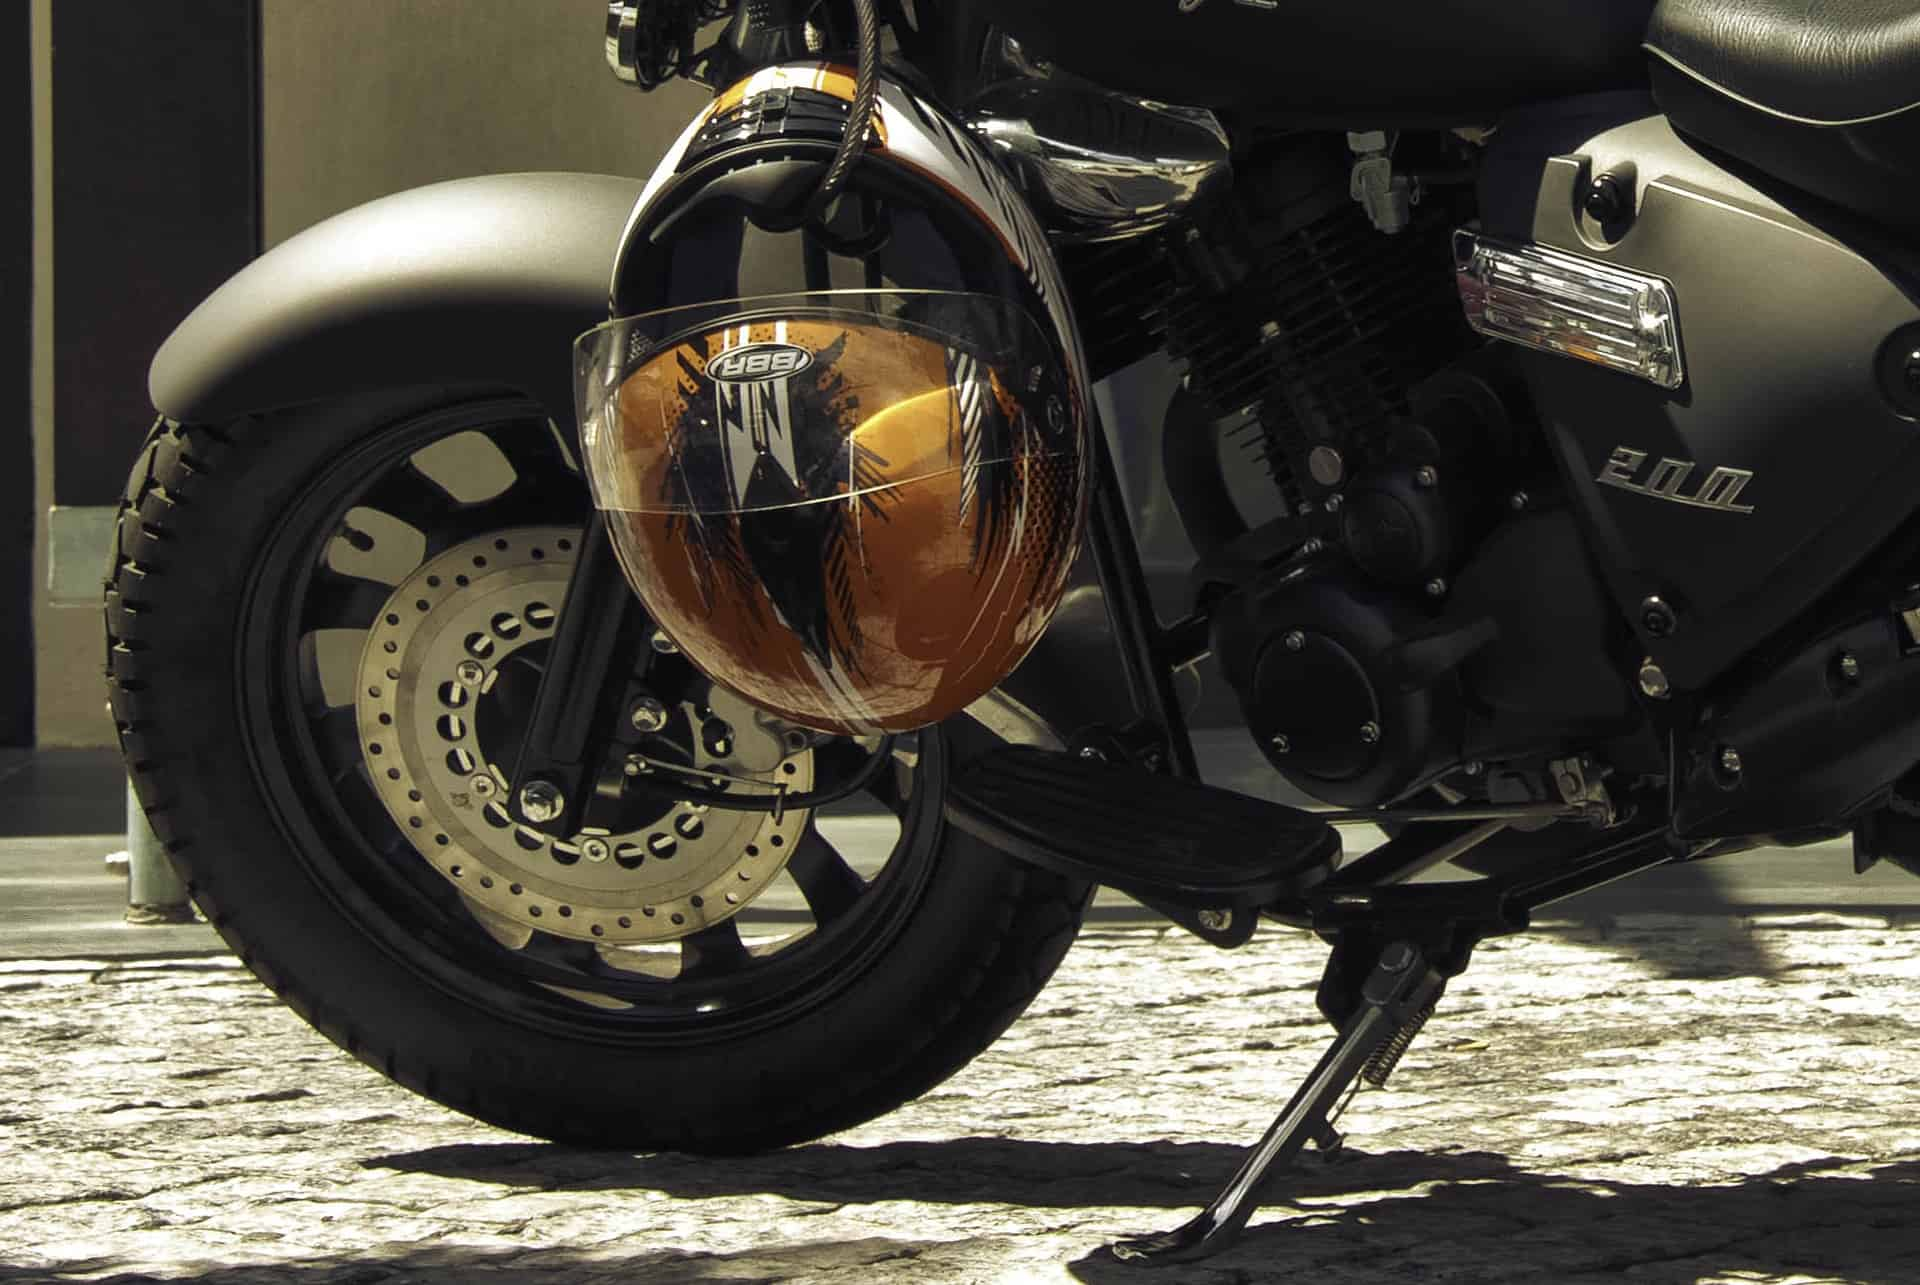 The helmet technology: rocketing the odds of survival in a motorcycle collision